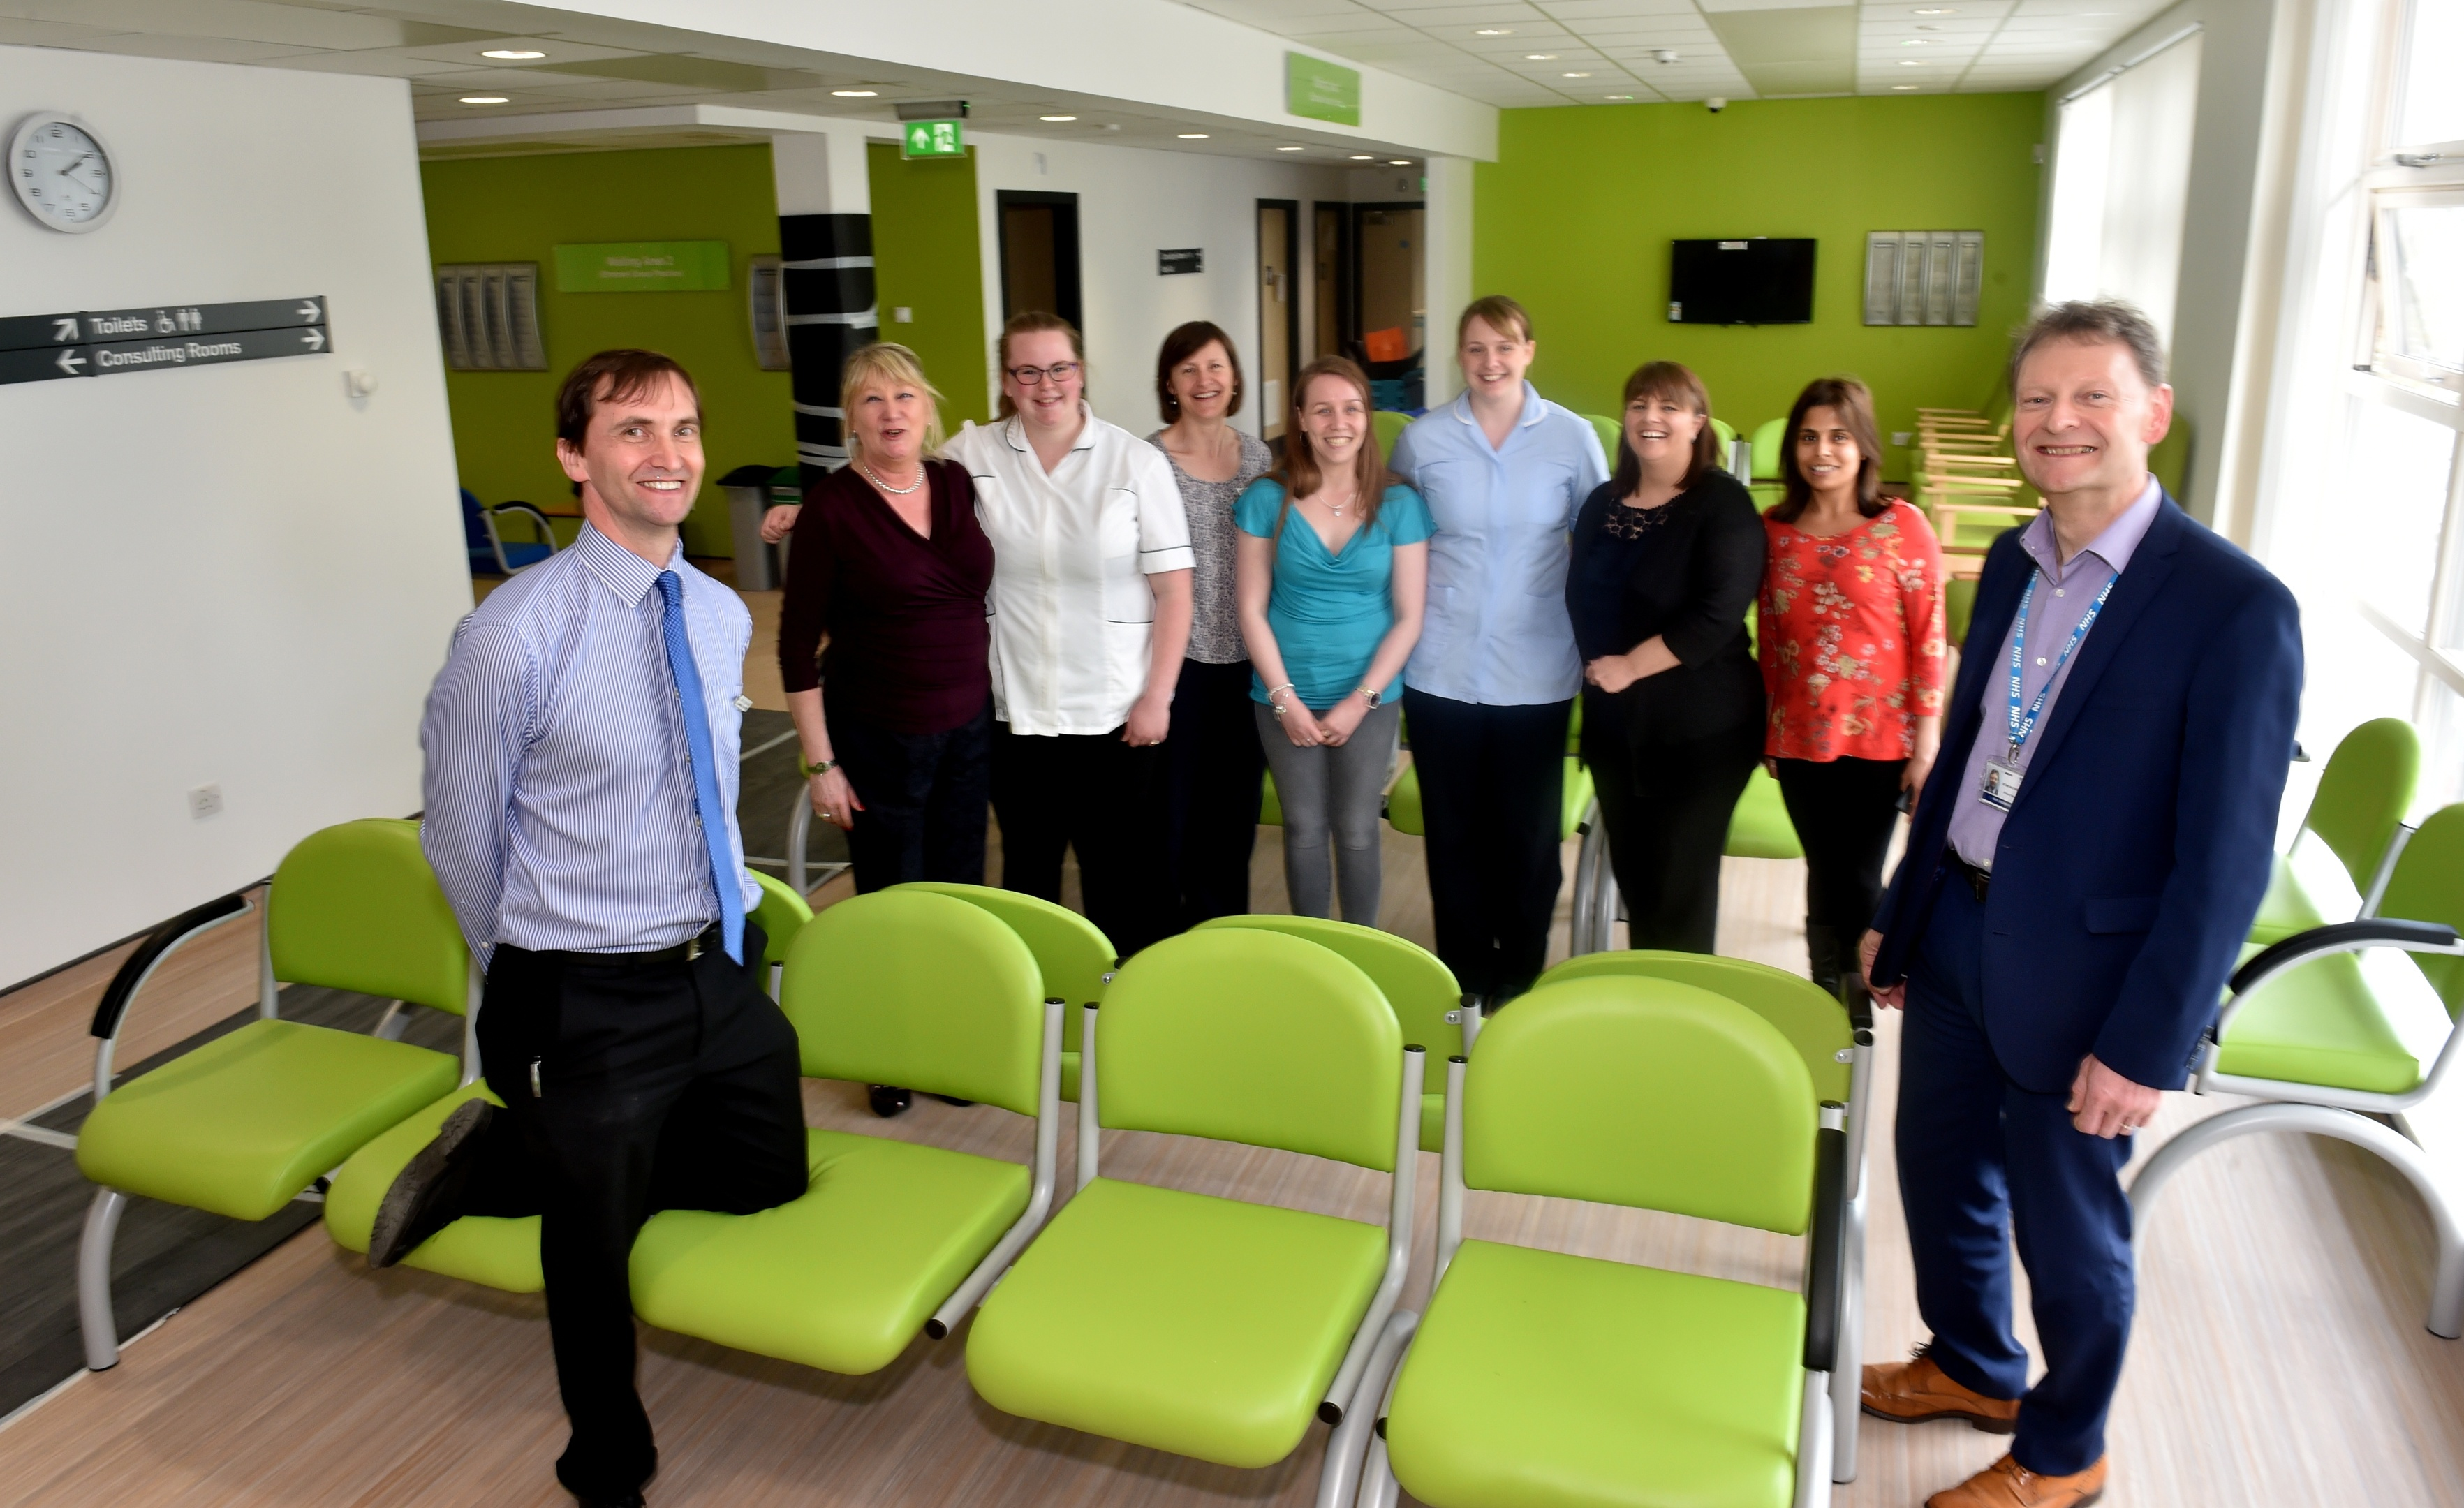 Dr Chris Provan (left) and project director Stan Mathieson (right) with staff at Foresterhill Health Centre. Picture by Colin Rennie